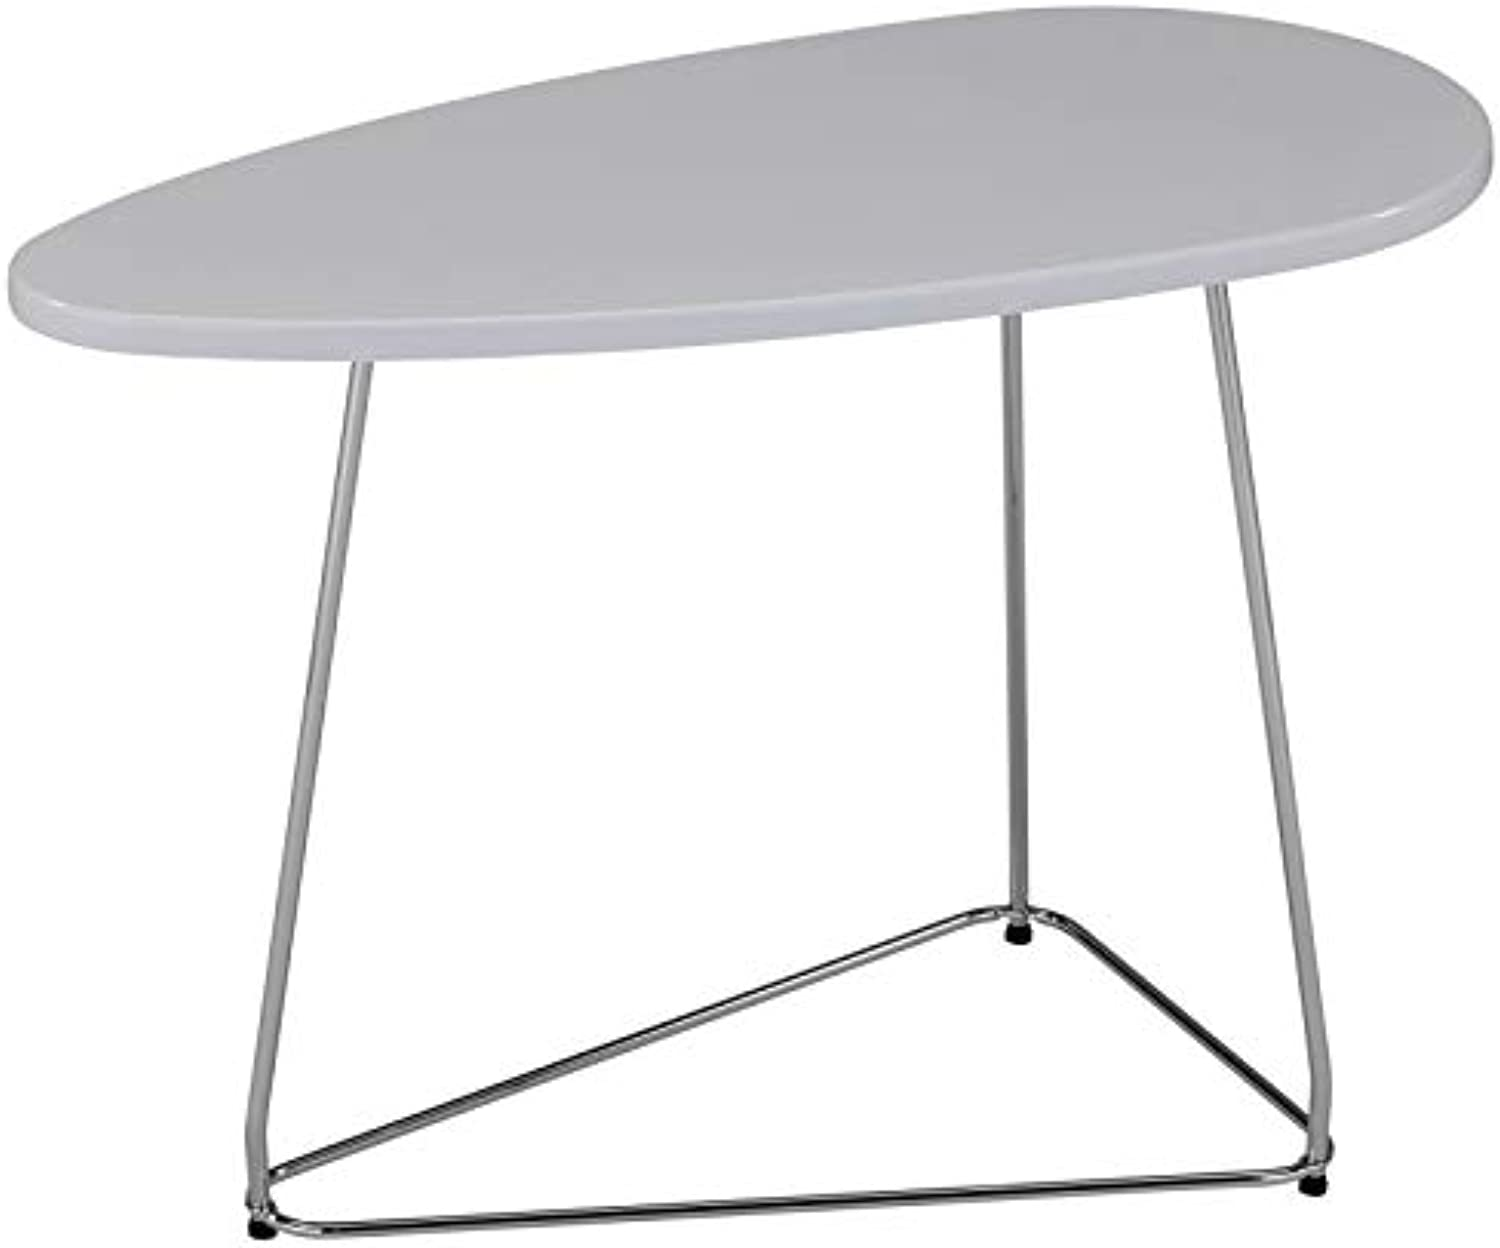 Jama Contemporary Wood & Metal Accent Table in White